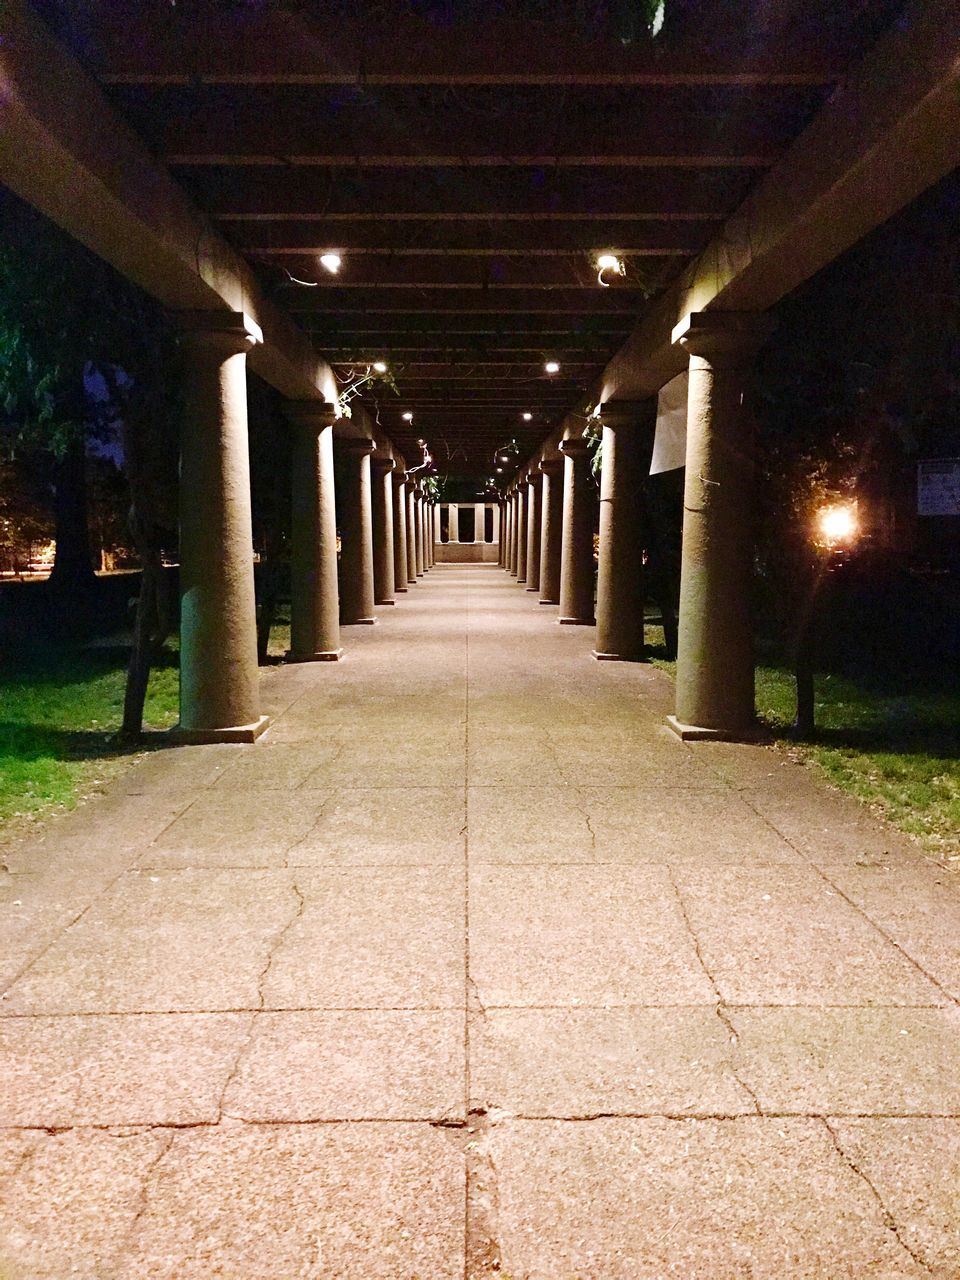 the way forward, illuminated, diminishing perspective, no people, night, walkway, architecture, architectural column, built structure, outdoors